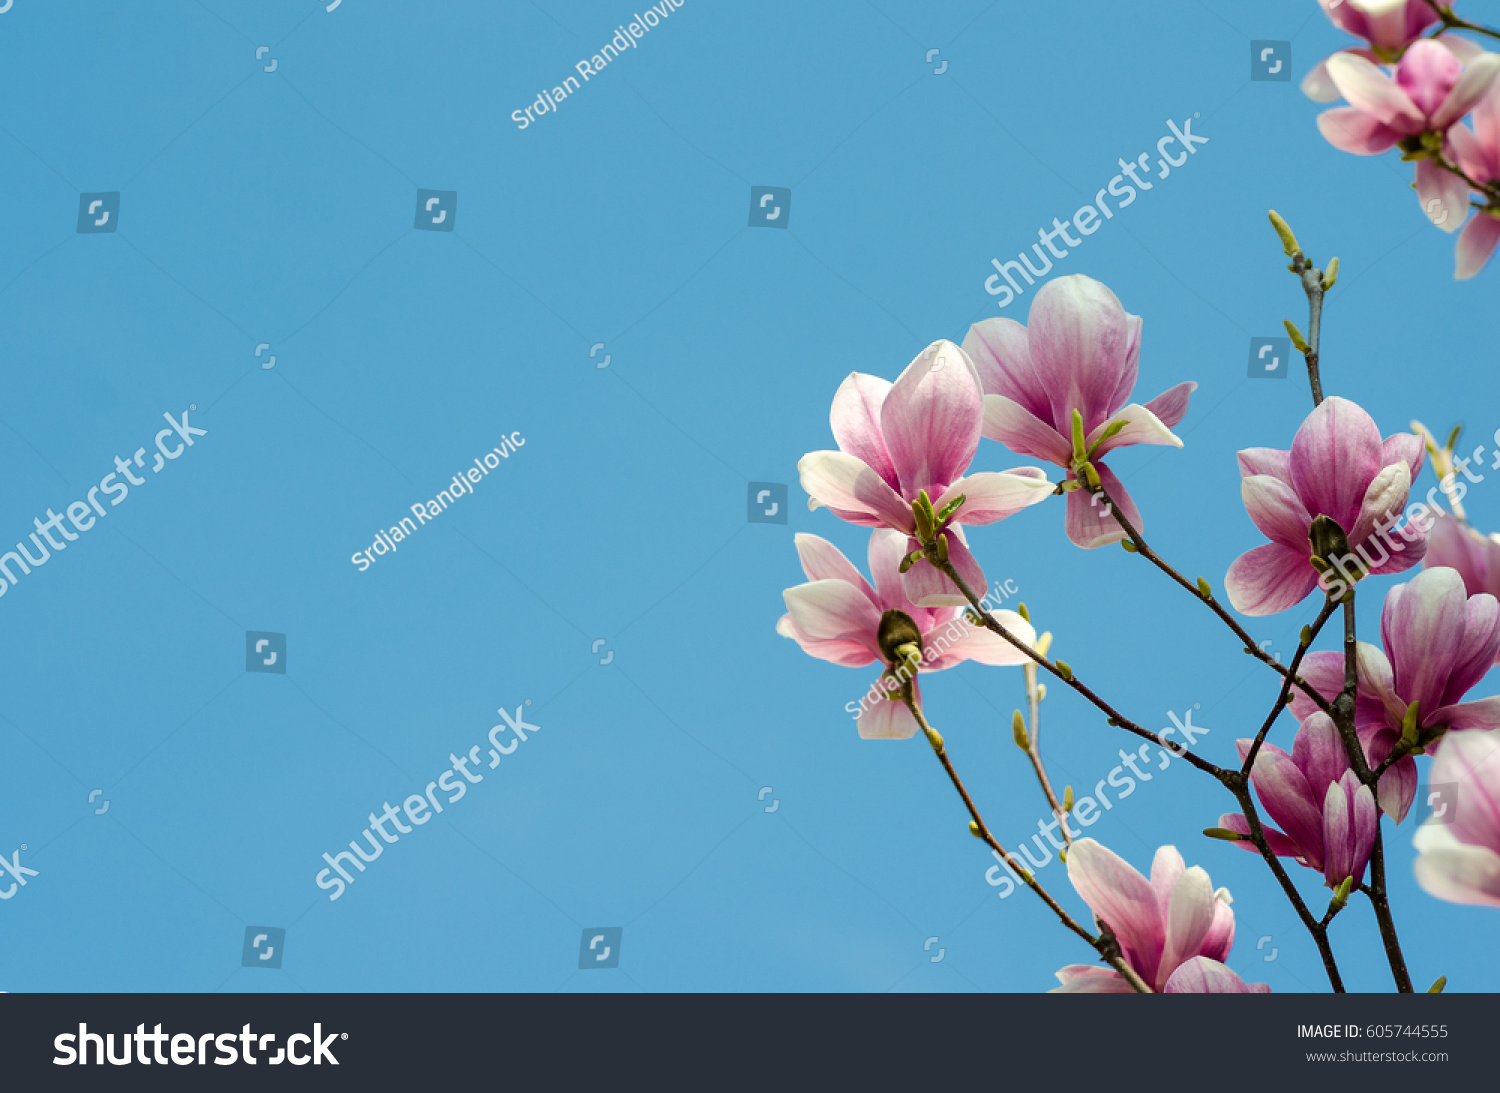 Beautiful purple magnolia flowers blossom spring stock photo 100 beautiful purple magnolia flowers blossom in the spring season on the tree with blue sky background izmirmasajfo